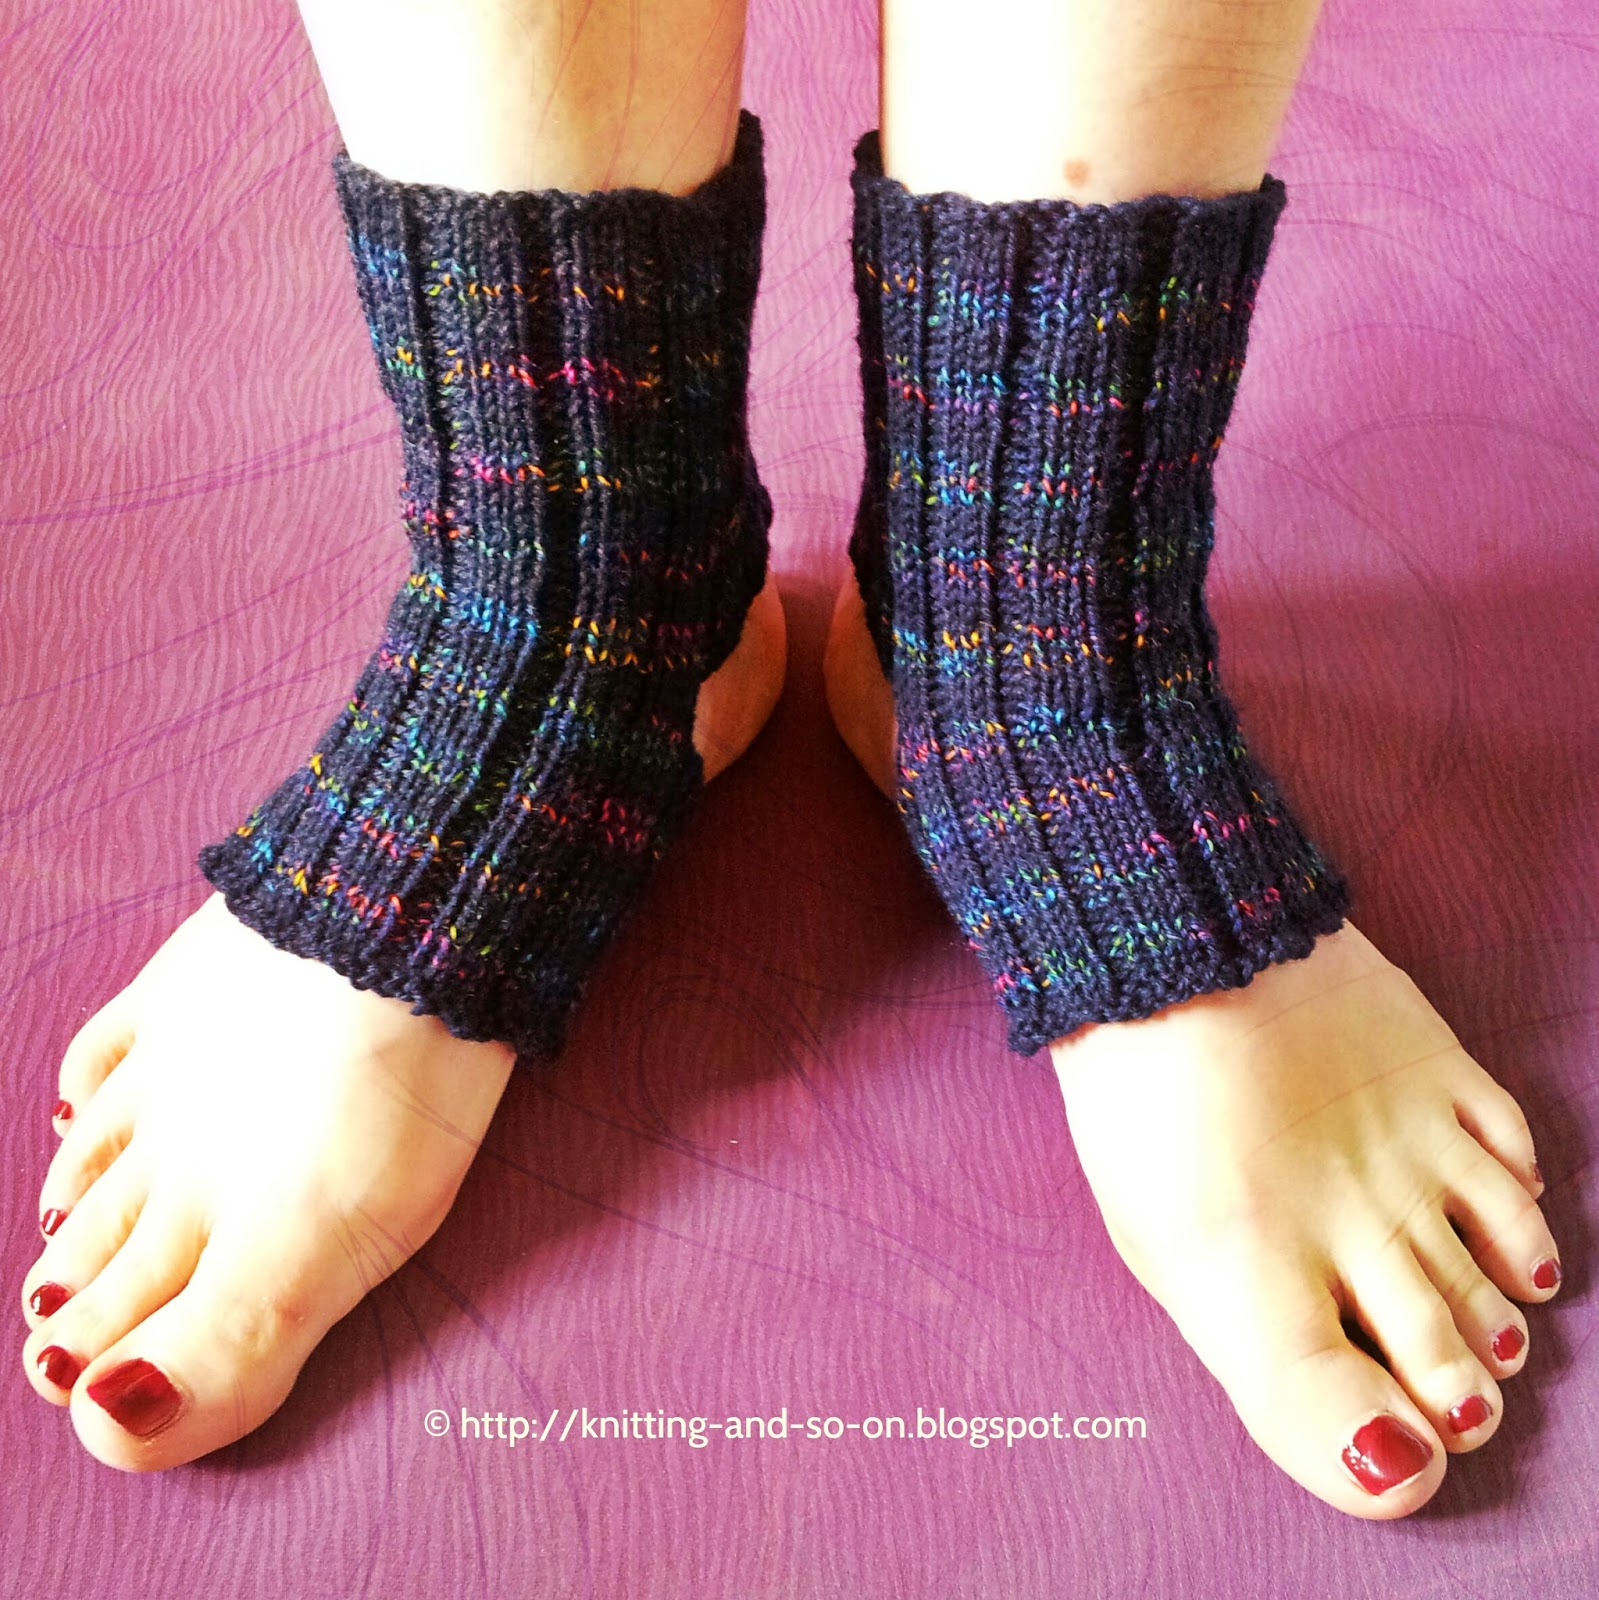 Easy Knitting Pattern For Yoga Socks : Knitting and so on: Yoga Socks, Yoga Socks and Yoga Socks